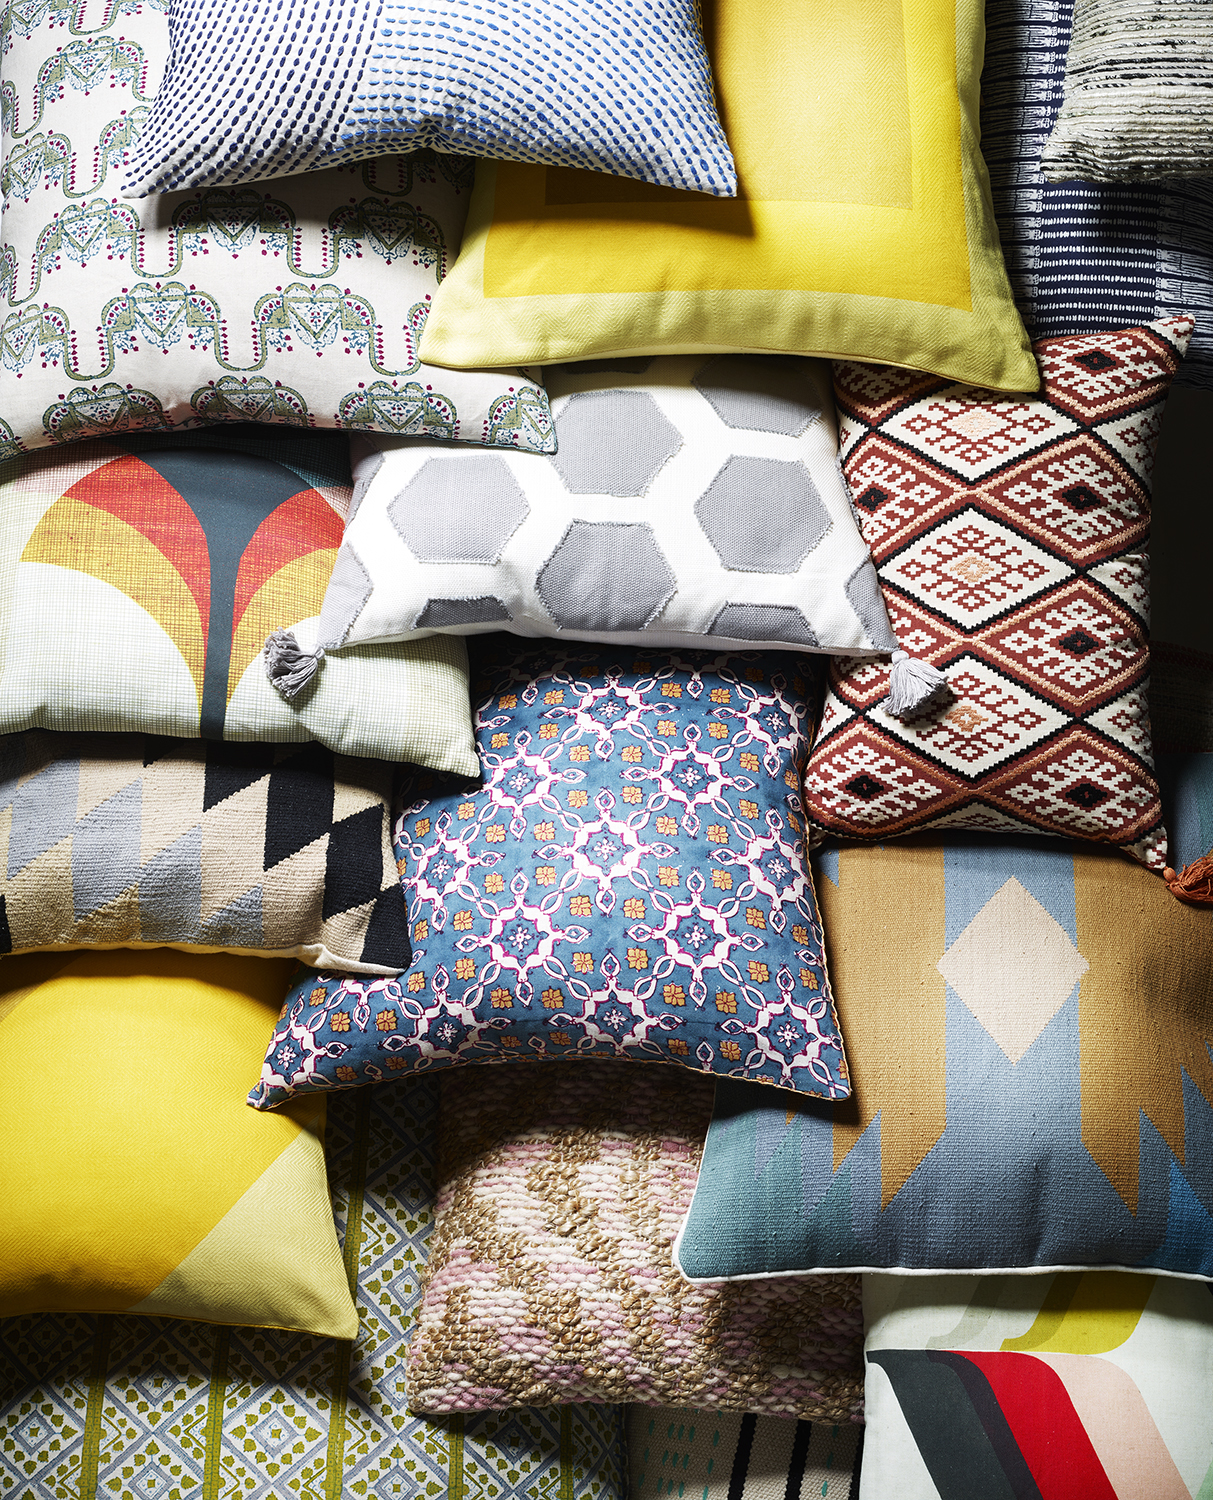 The 20 Greatest Spots to Buy Textiles Online